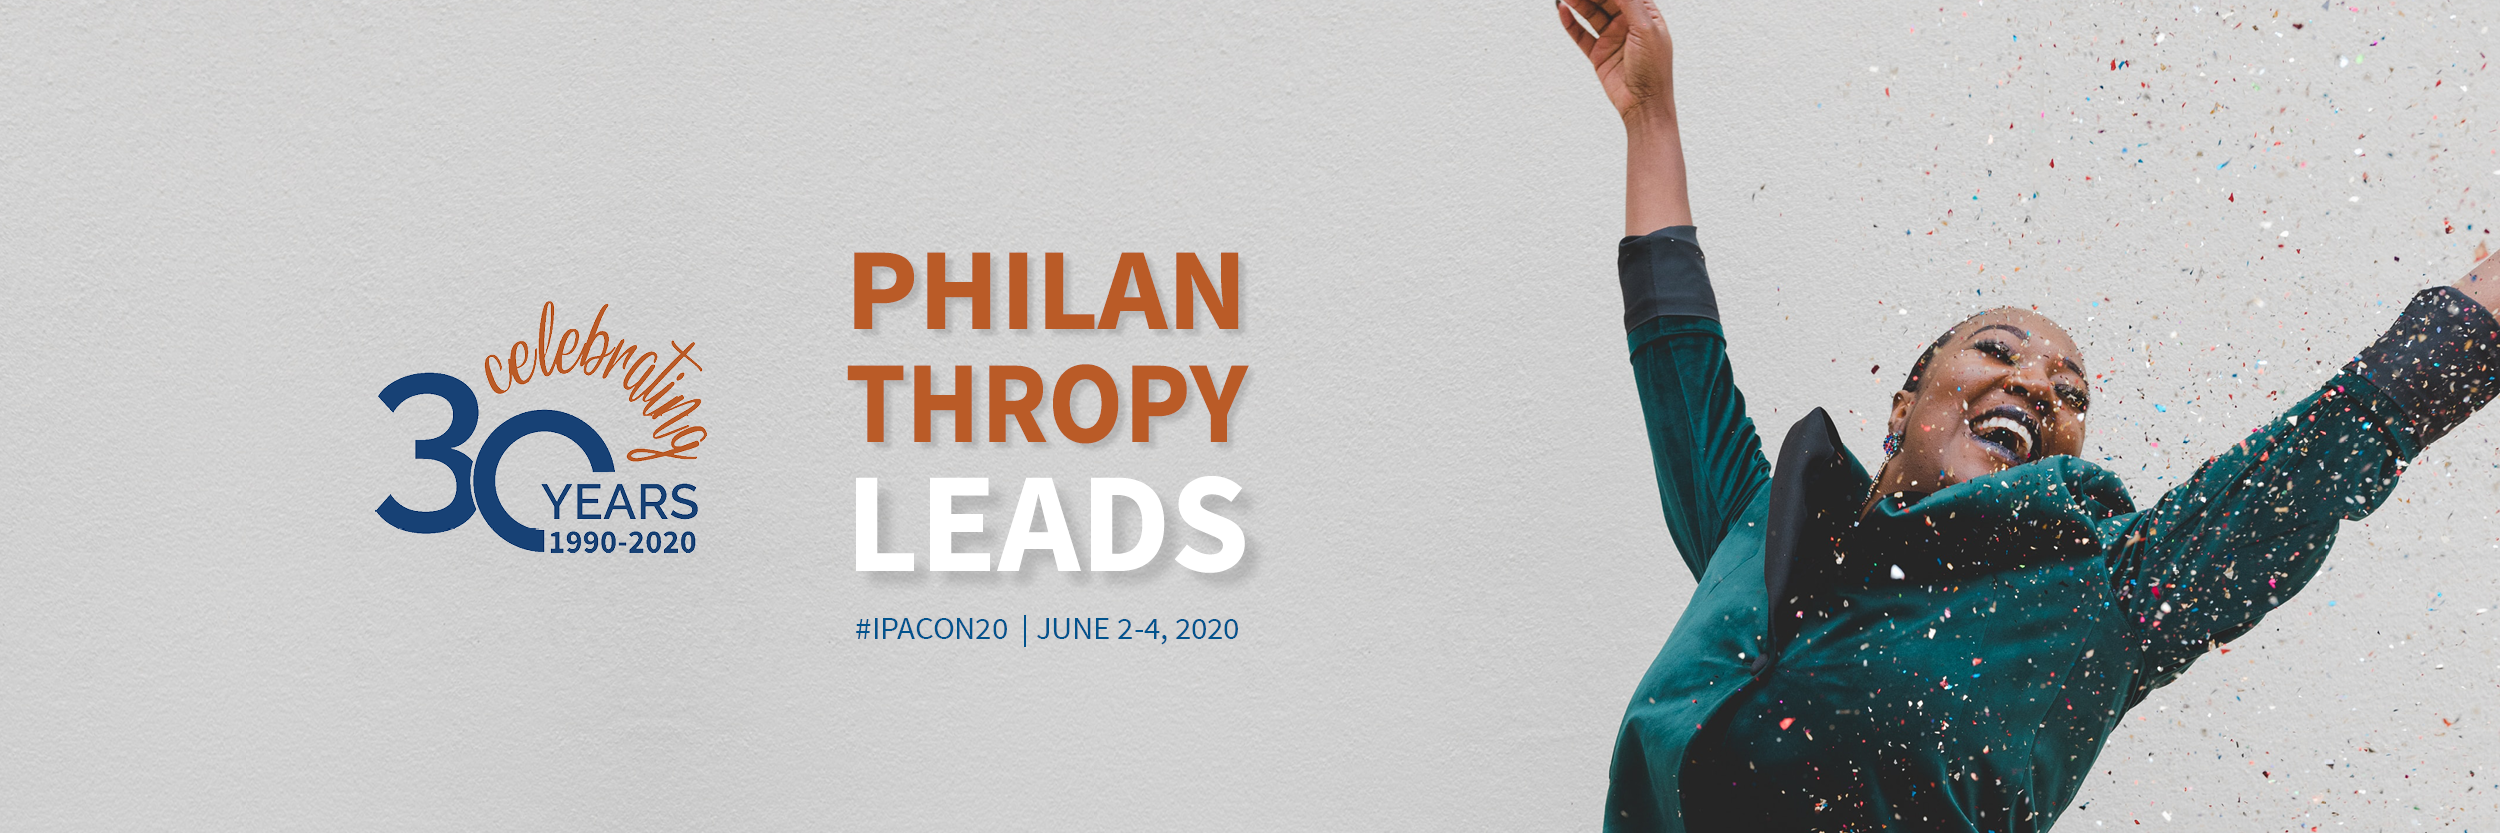 Philanthropy Leads Conference